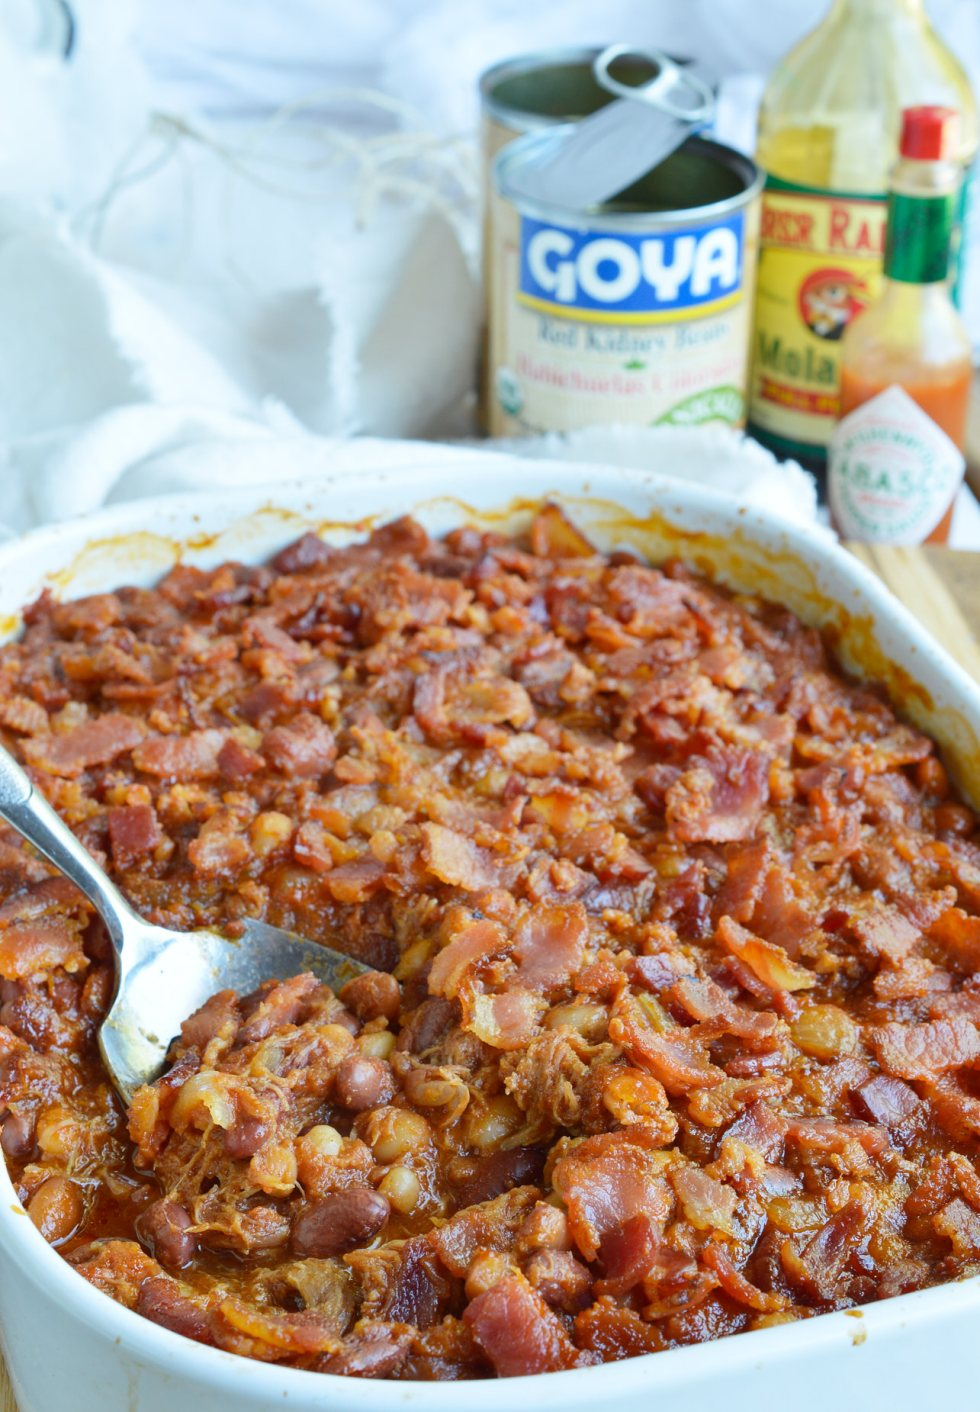 The pulled pork and bacon in this Double Pork Baked Beans Recipe makes it perfect as a side dish or dinner! Homemade pork and beans is super easy and delicious. This dish is great for feeding a hungry crowd!